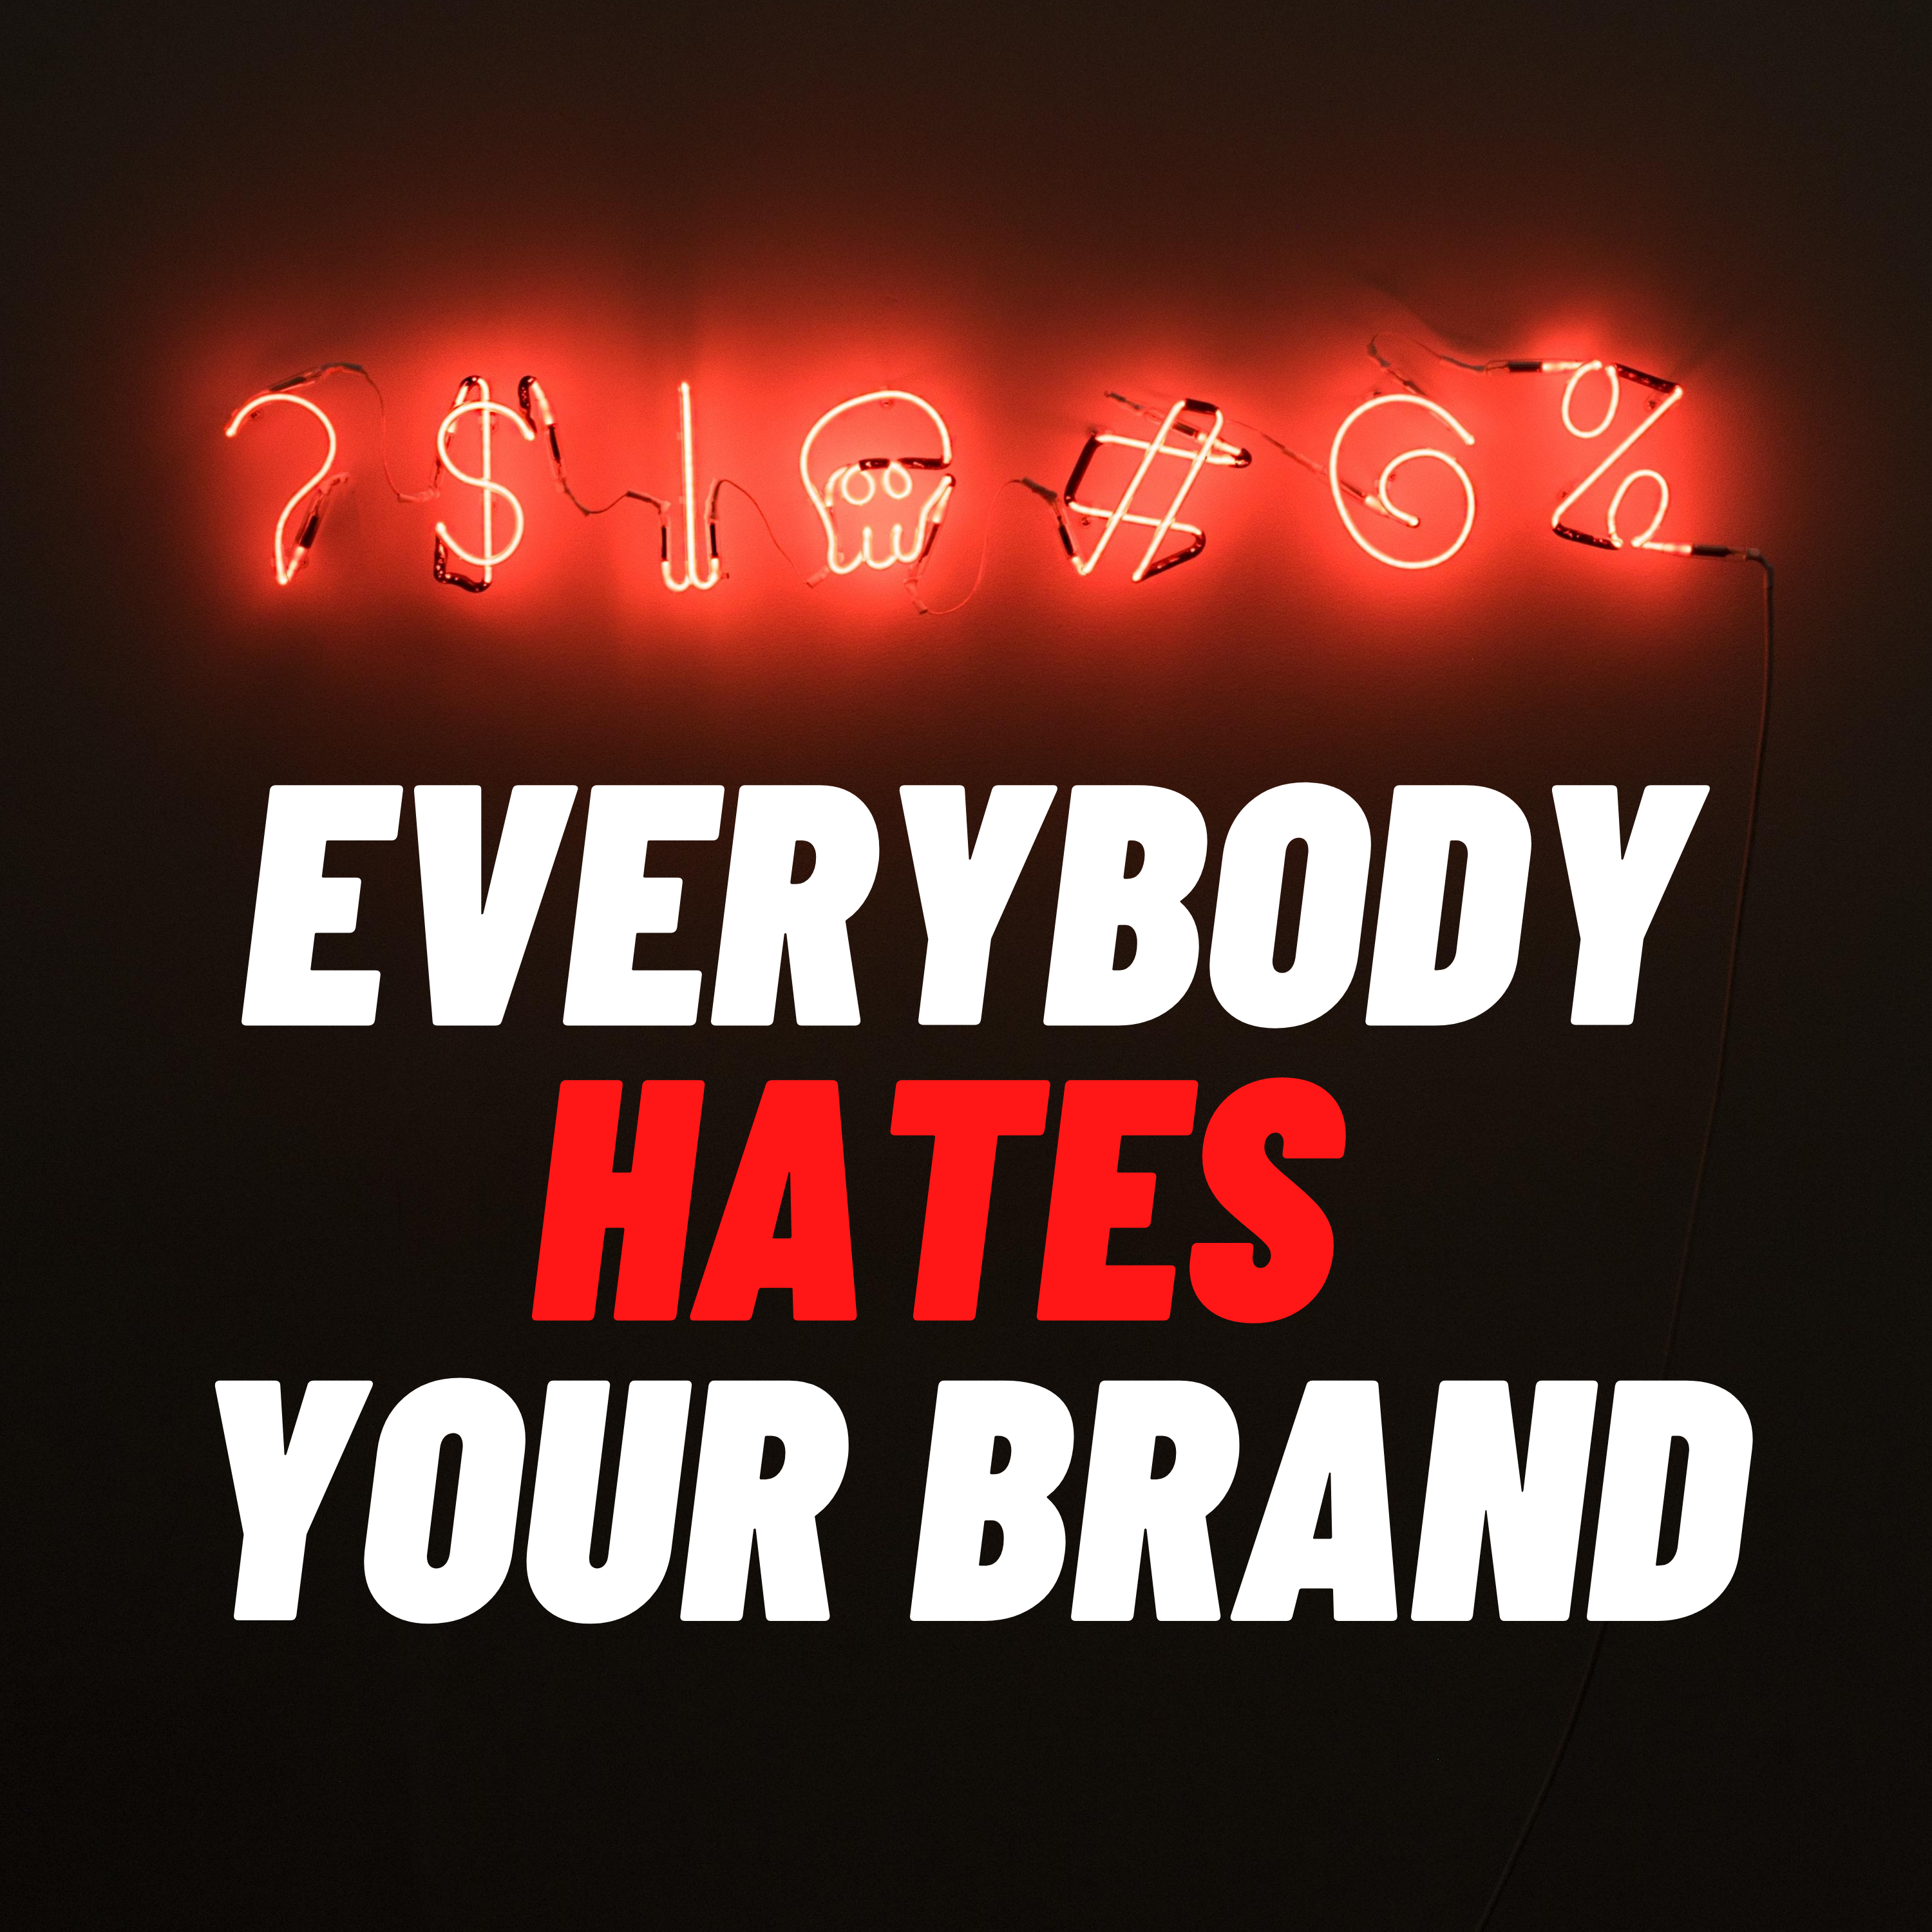 Everybody hates your brand image